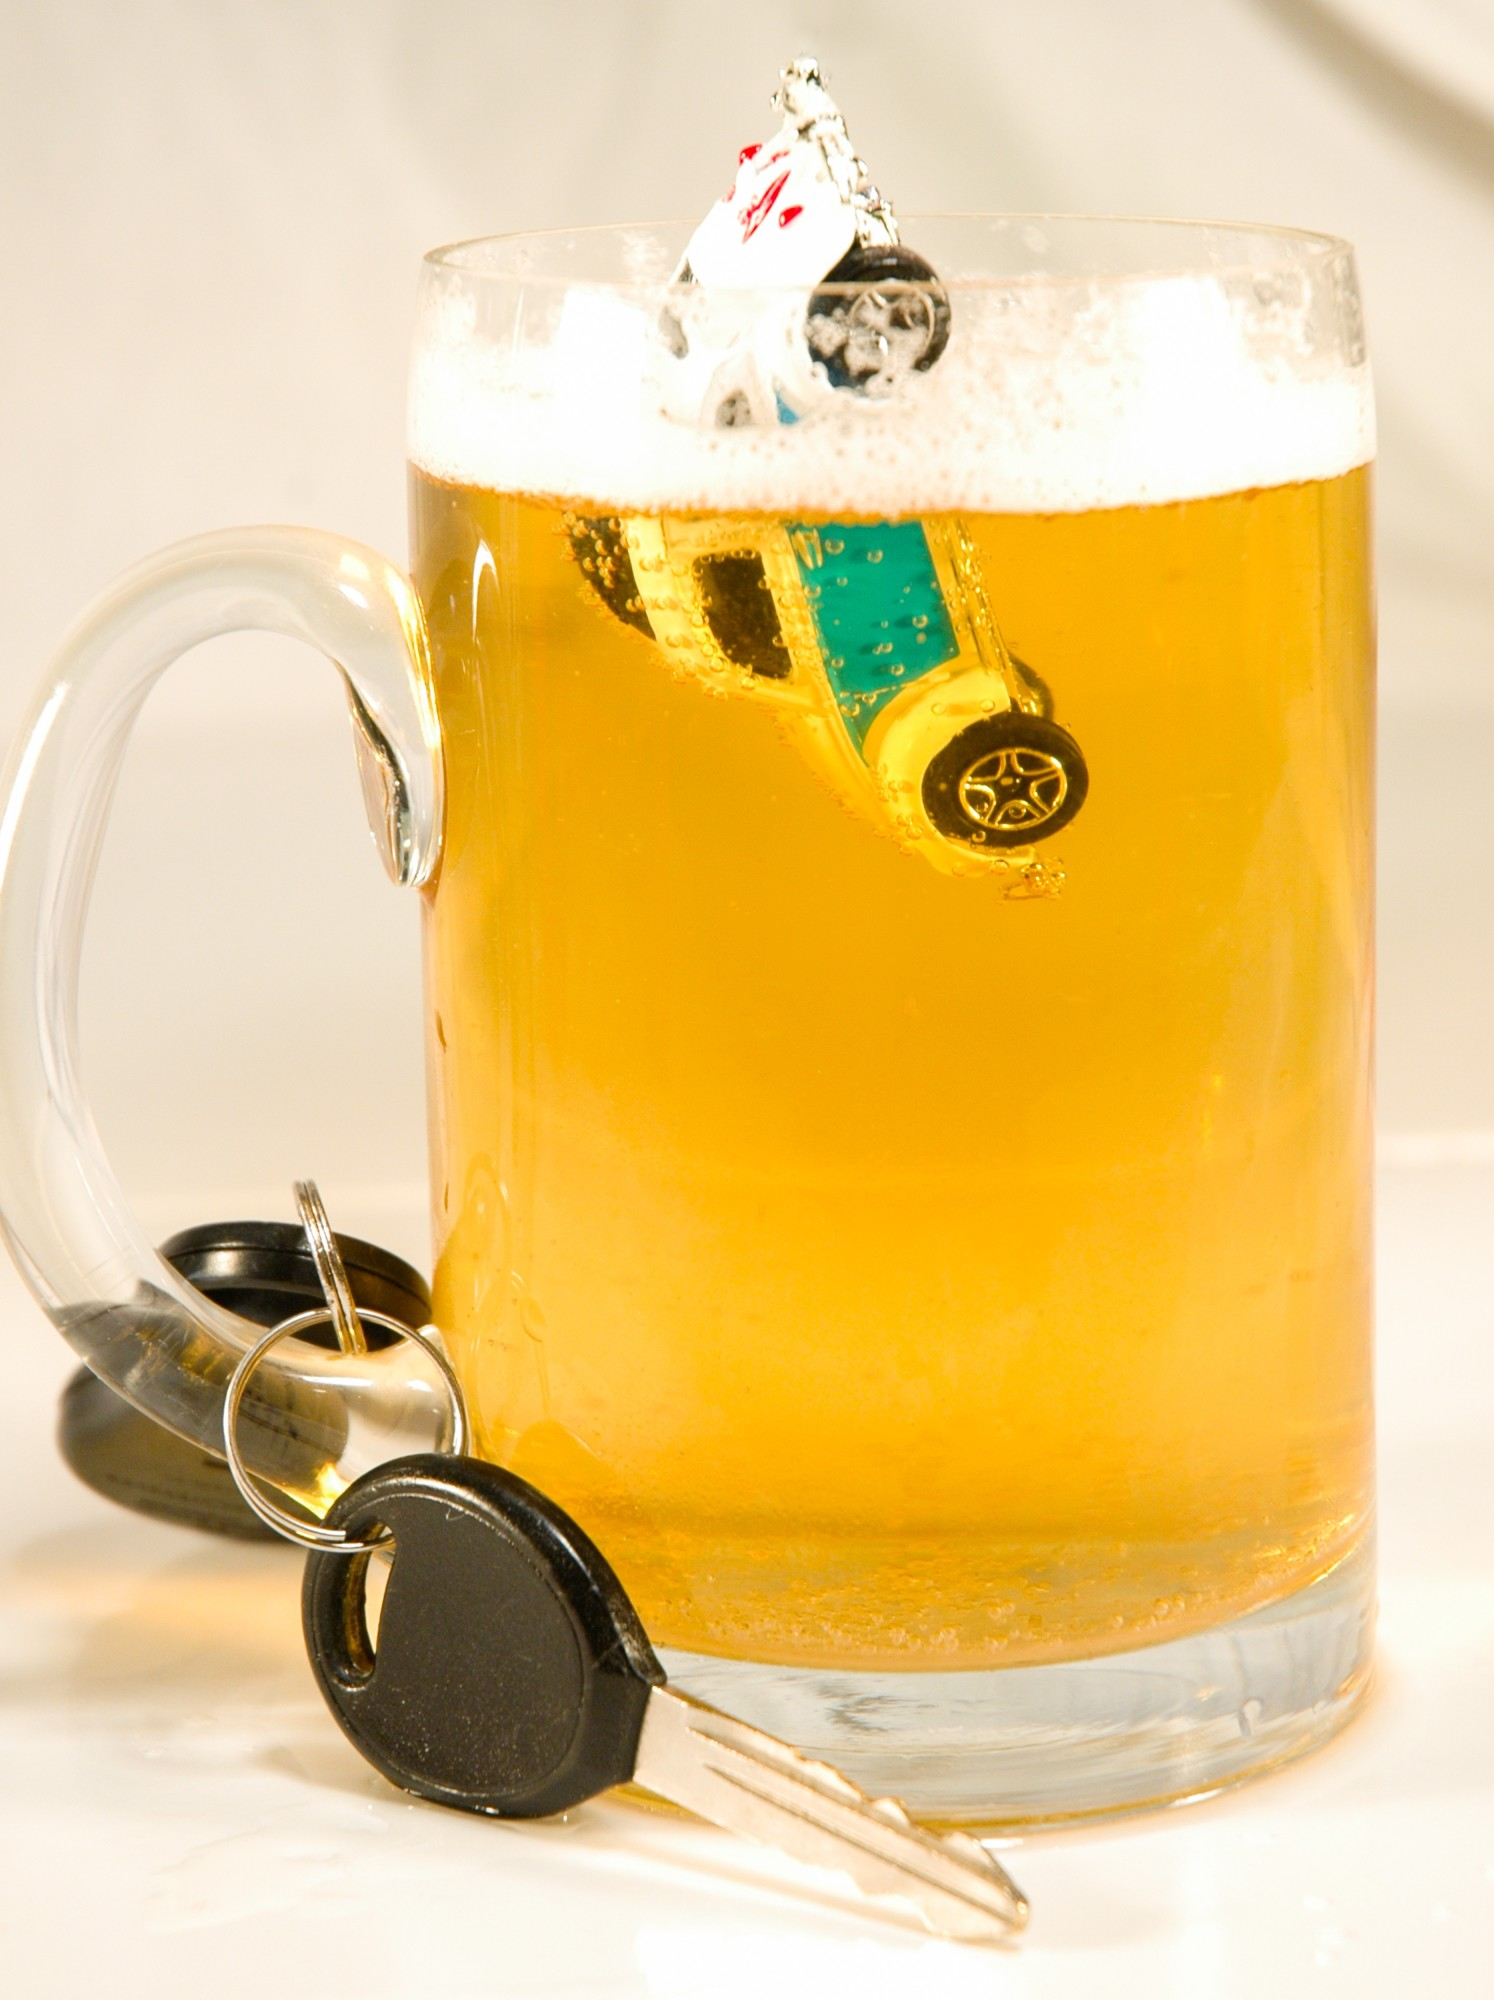 You Have Been Stopped for a DUI - Now What?